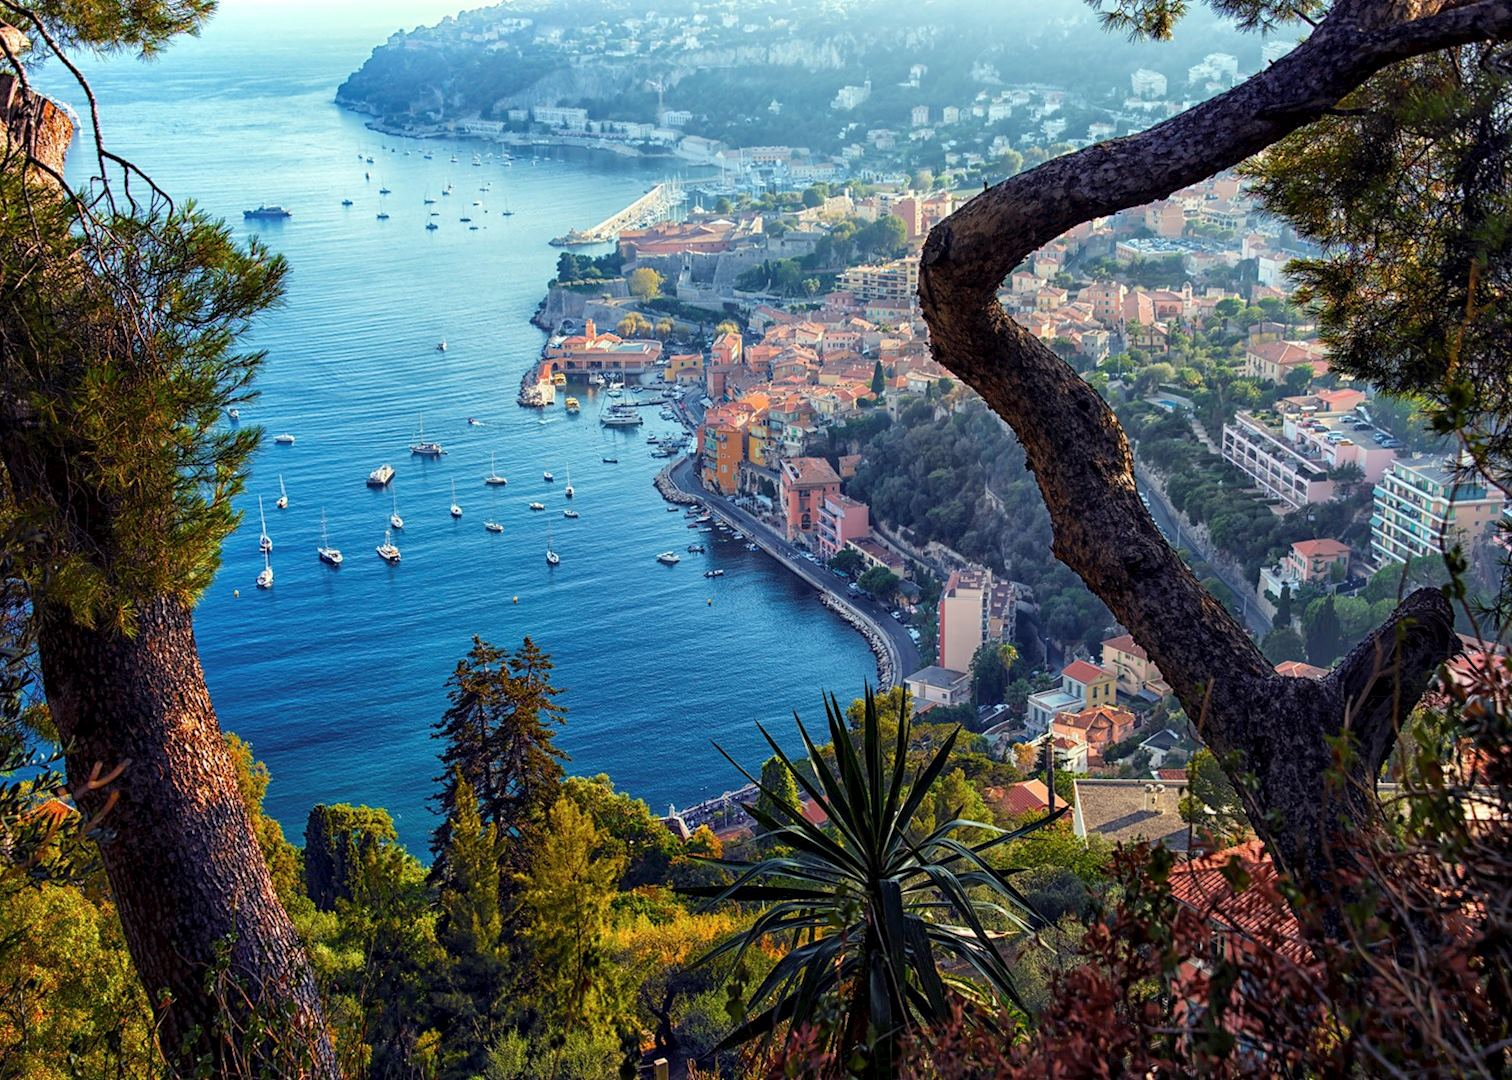 Private Boat Tour Of The Riviera Coastline From Saint Tropez Audley Travel